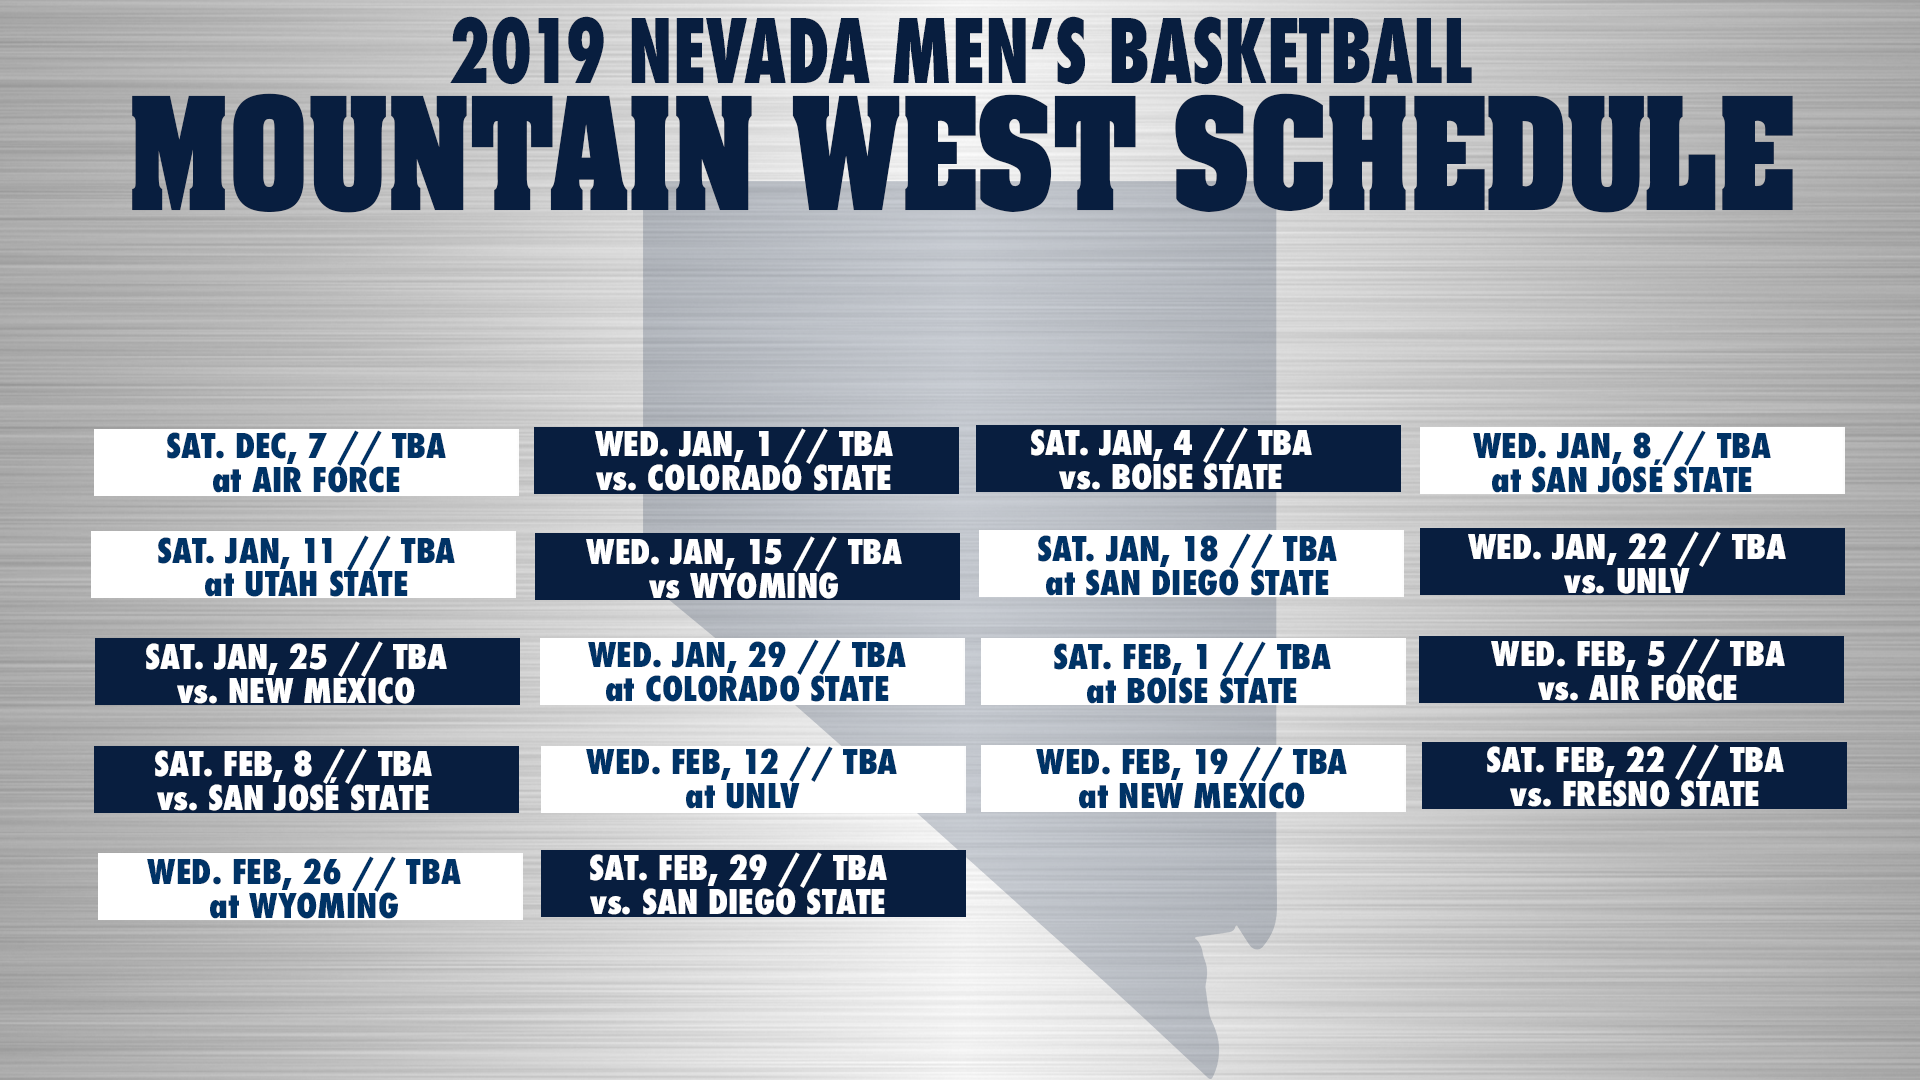 Mountain West men's basketball schedule announced - University of